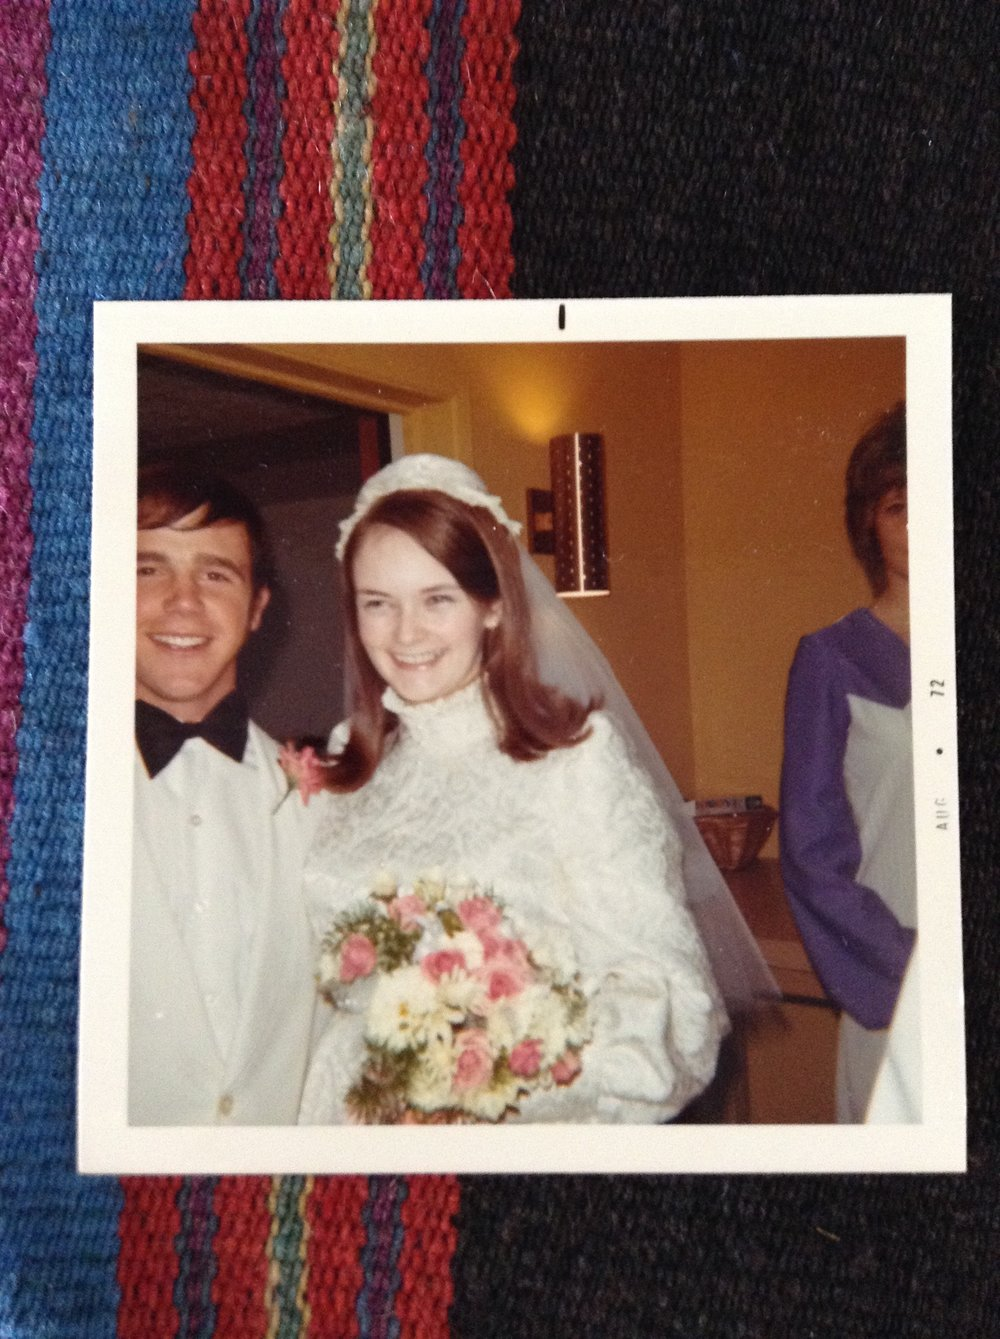 Dick and Kathy Holzer wedding day, Stanford, Montana.  Of course, she made her own wedding dress!